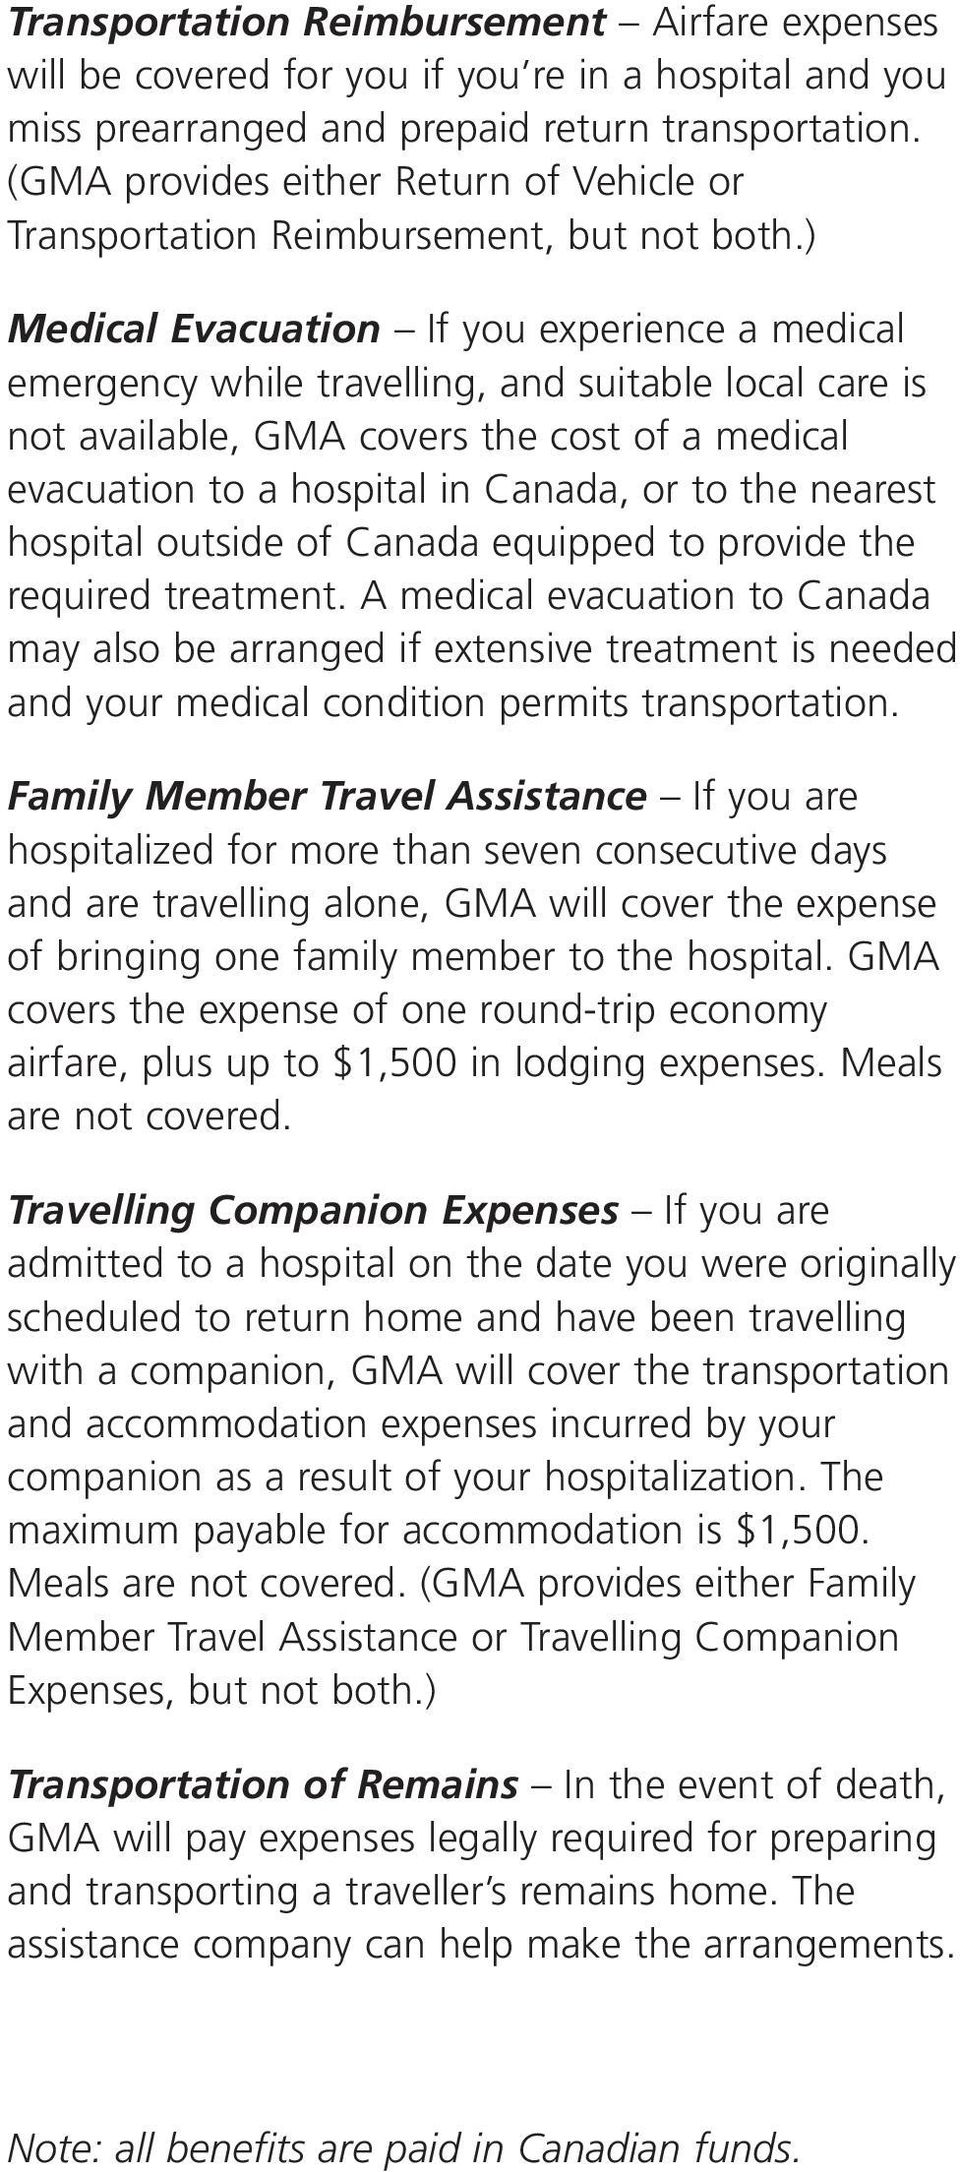 ) Medical Evacuation If you experience a medical emergency while travelling, and suitable local care is not available, GMA covers the cost of a medical evacuation to a hospital in Canada, or to the